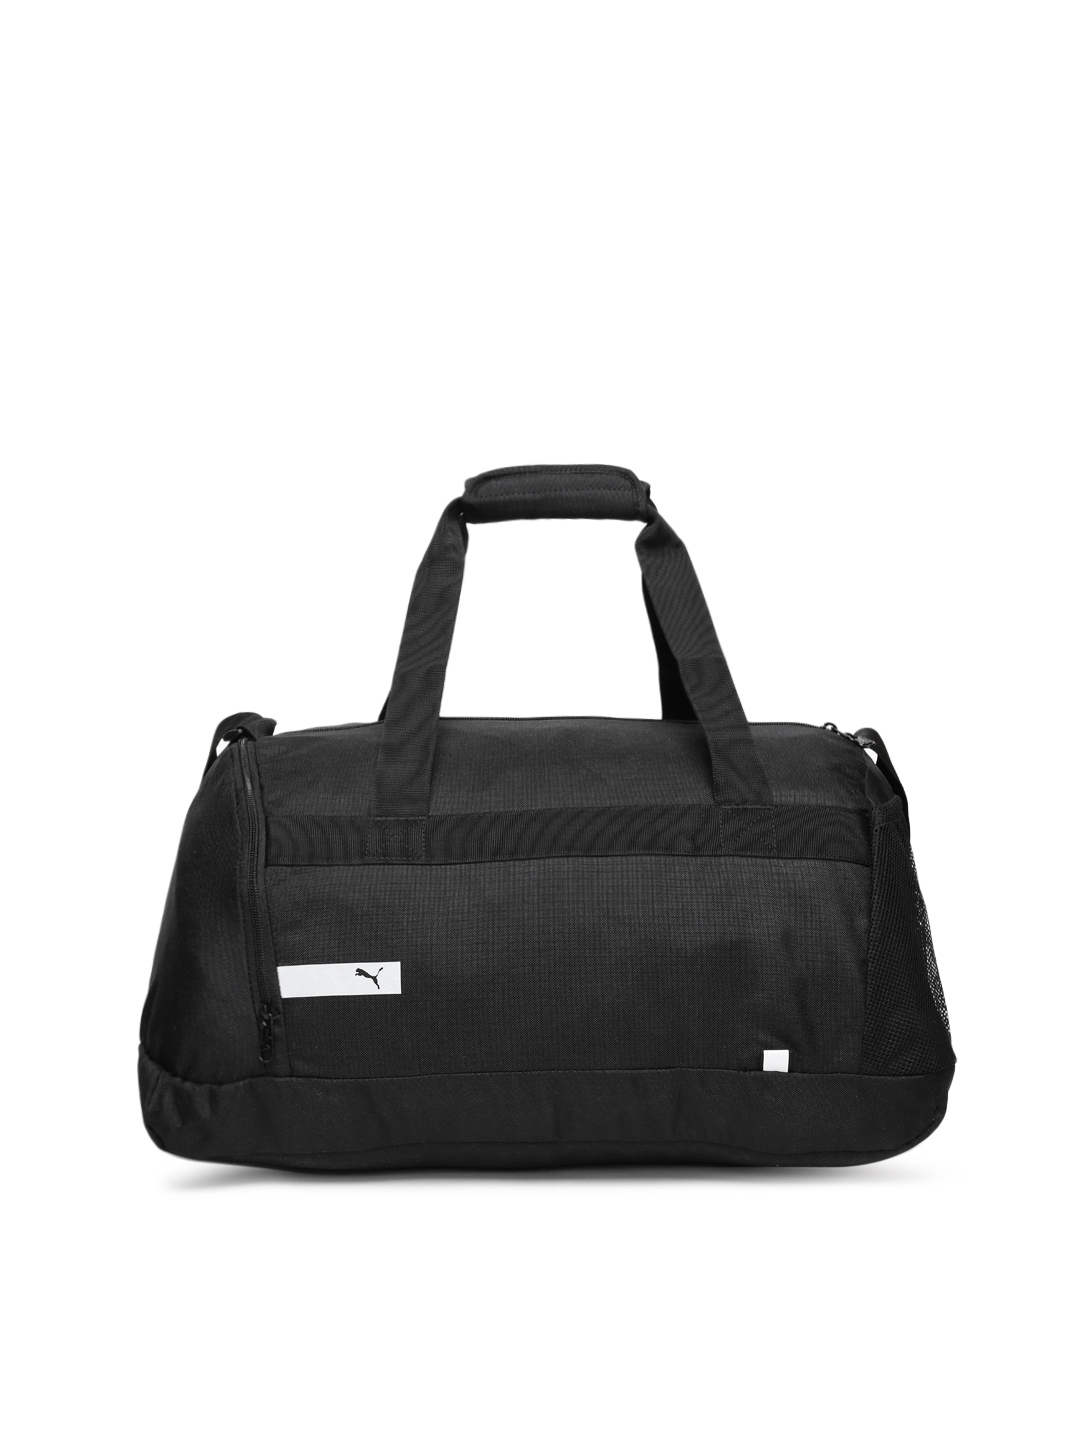 65bf826a0d60 Buy Puma Unisex Black Vibe Sports Bag - Duffel Bag for Unisex ...